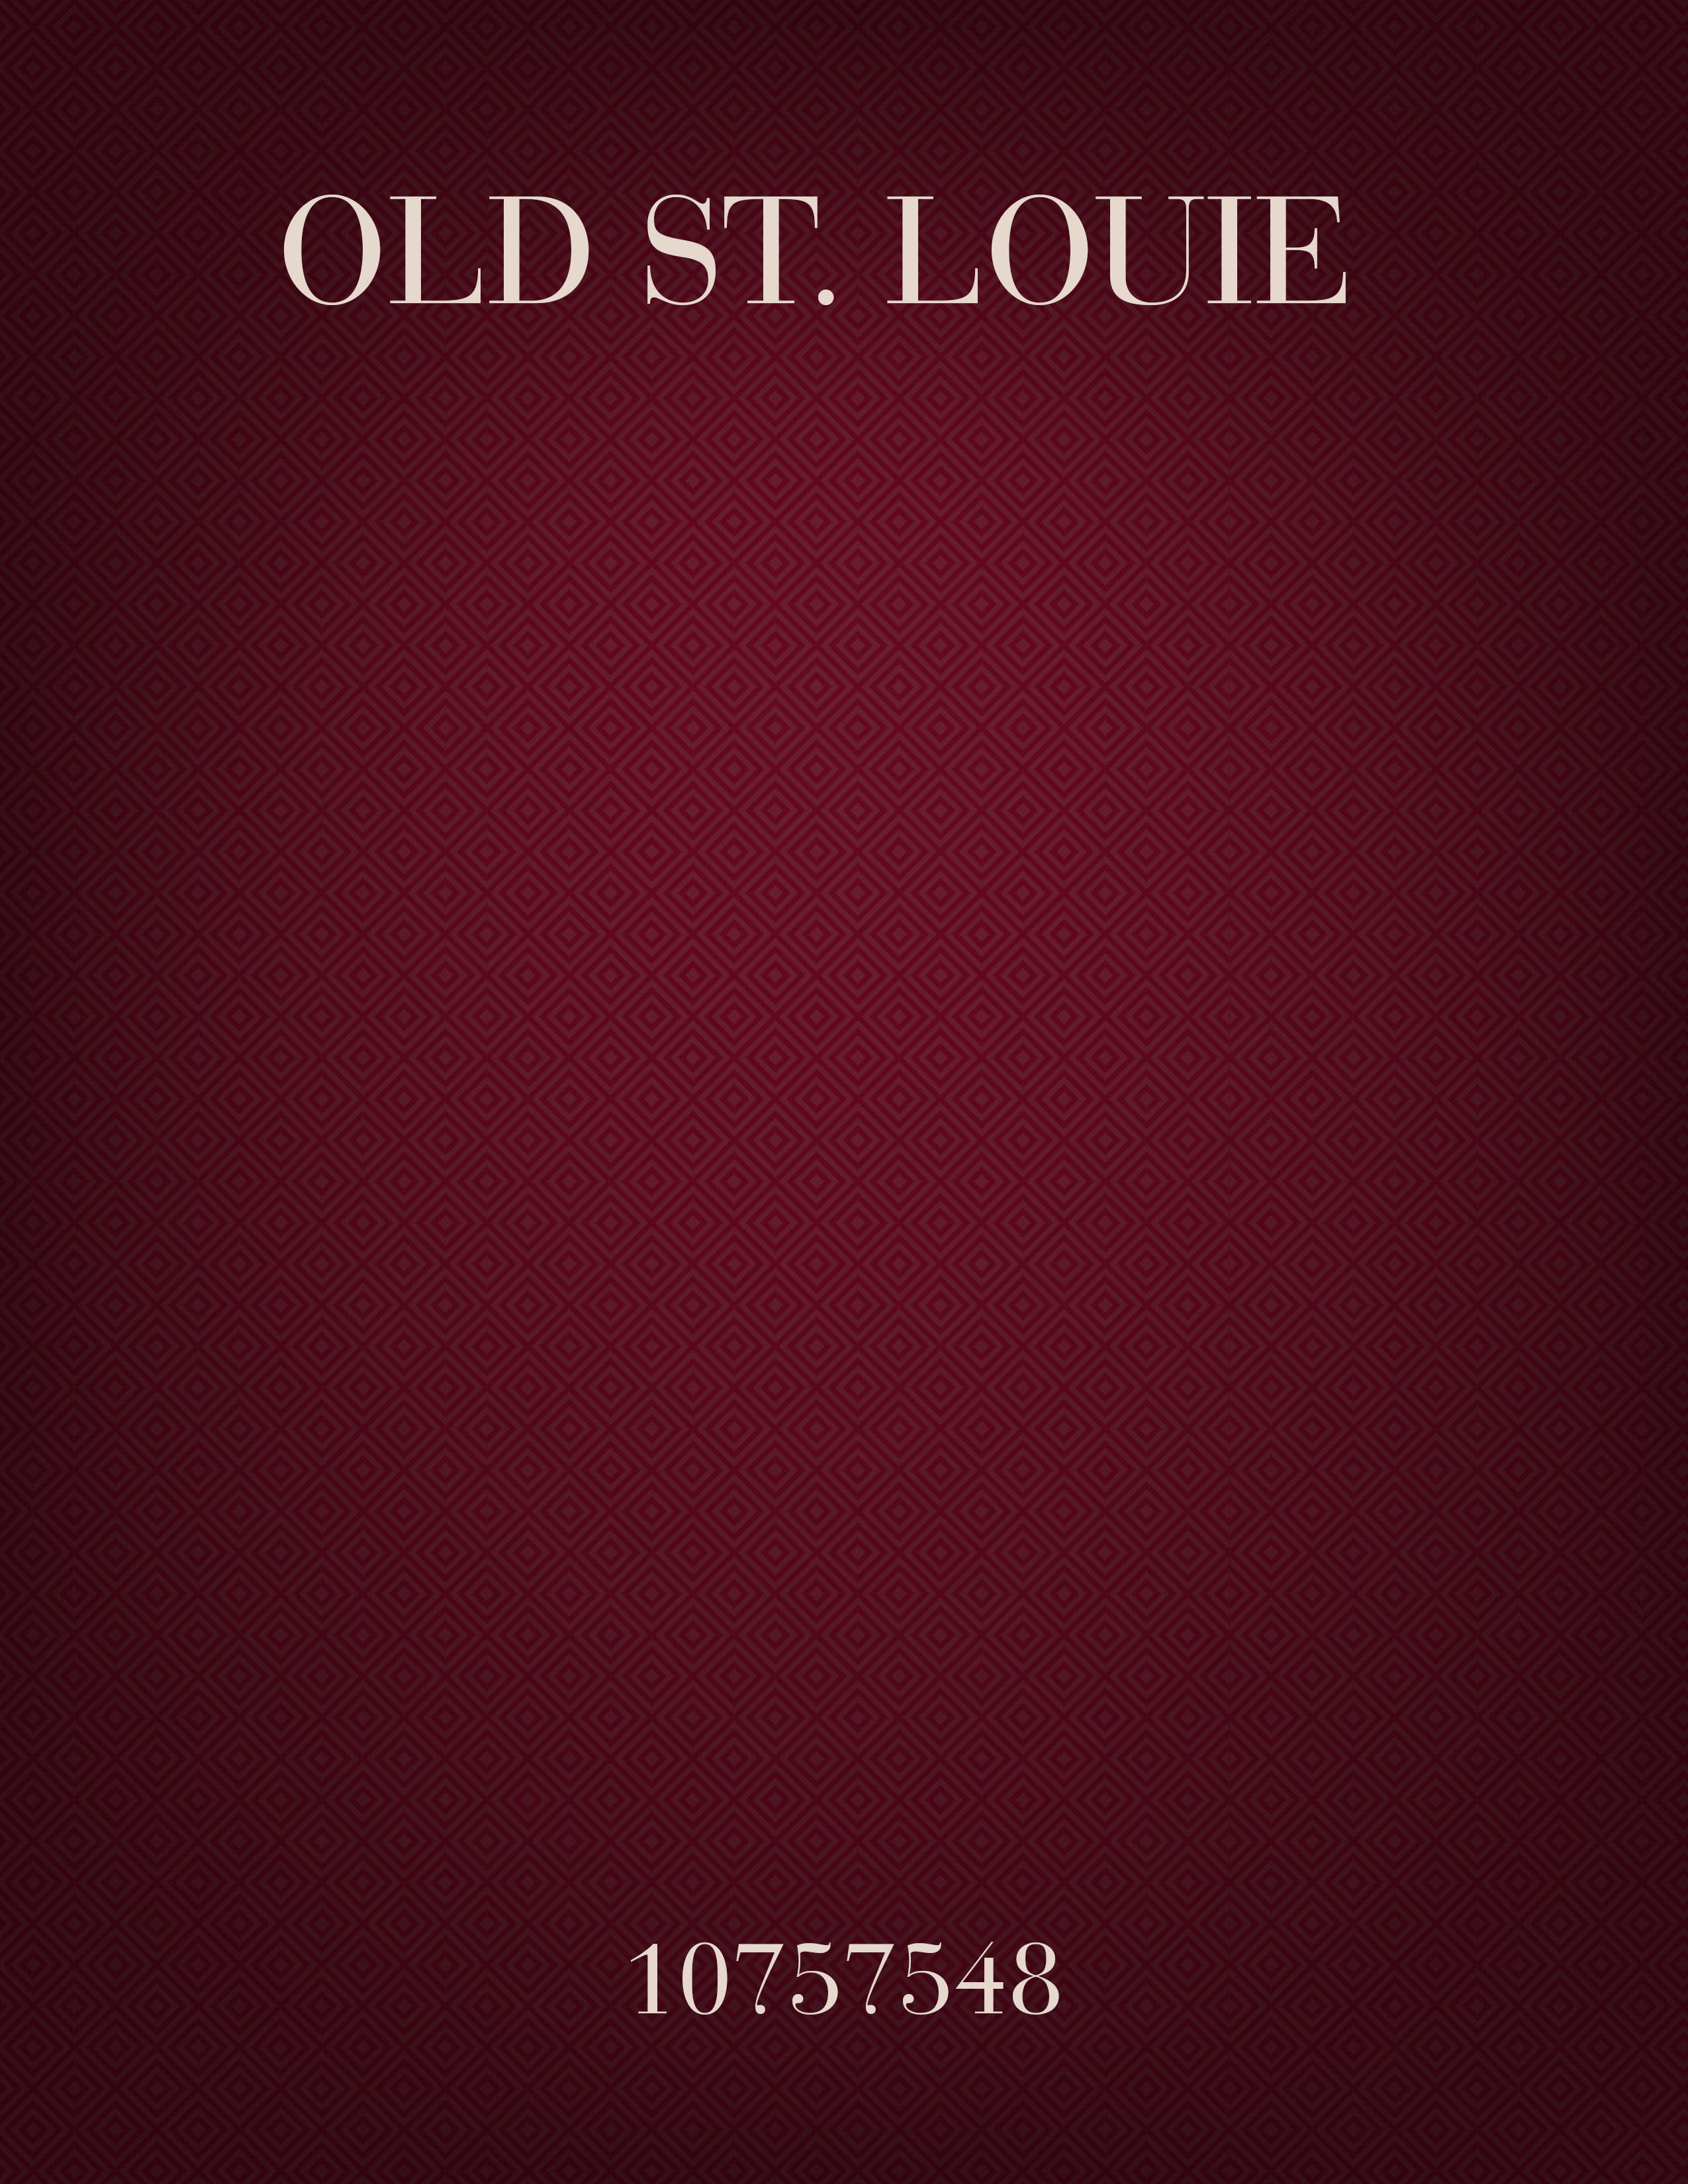 Old St. Louie